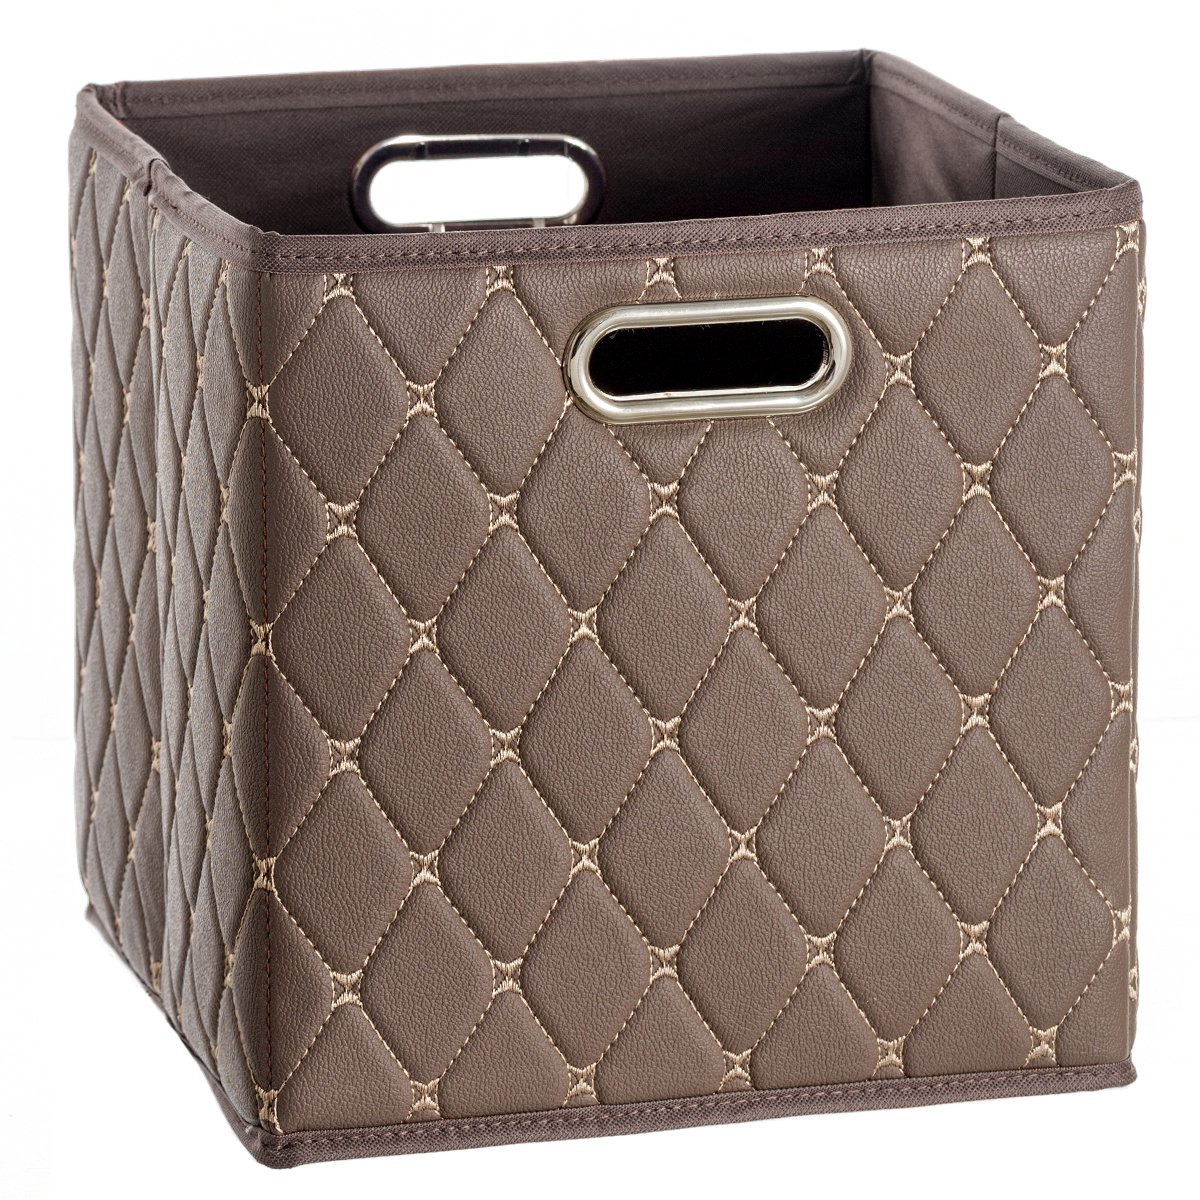 Creative Scents Cube Storage Bin Faux Leather - Decorative Basket with Handles for Shelf – Foldable Storage Cube Organizer Bin for Closet Clothes Blanket Magazines Bedroom Nursery Under Bed (Brown)